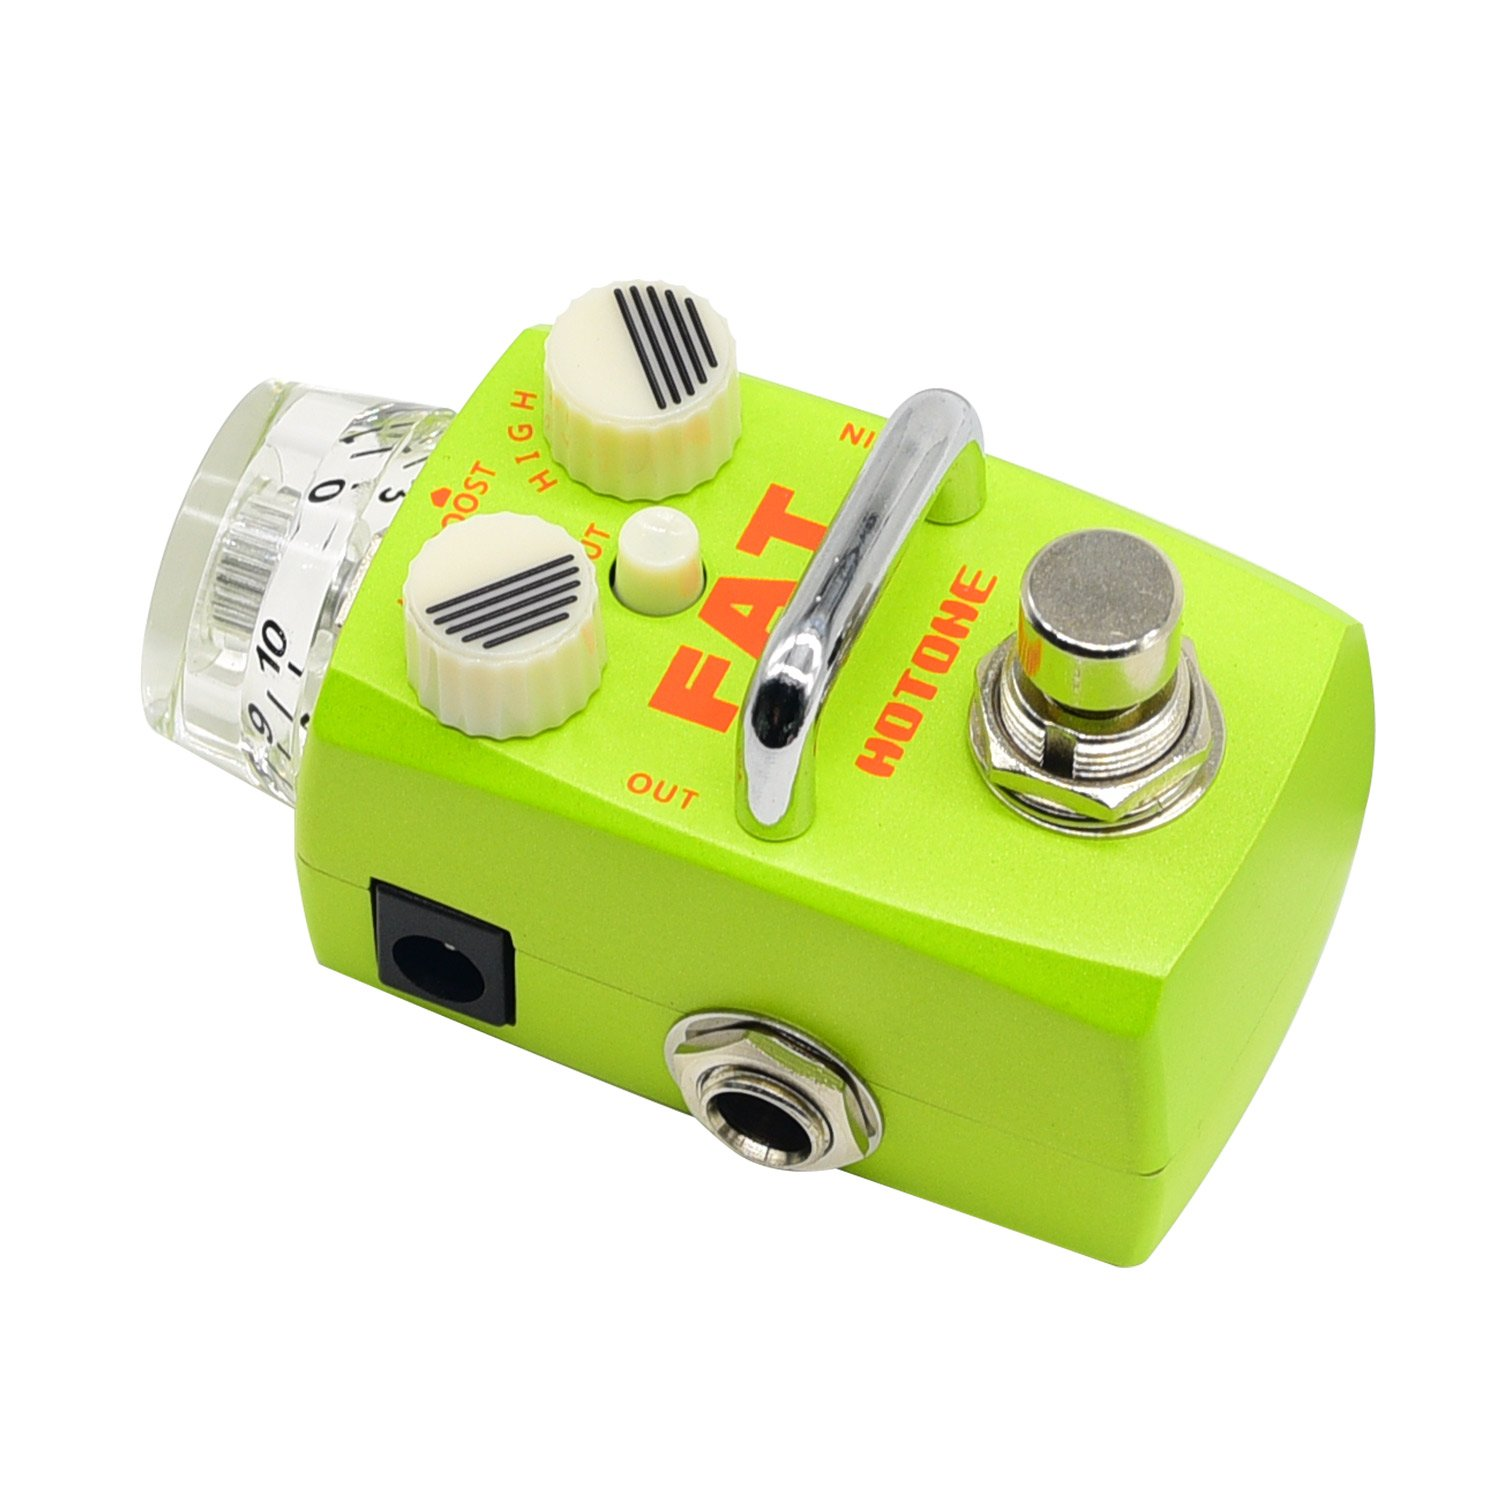 Sonicake Hotone Skyline Fat Fet Preamp Booster W H Low A Frequency Doubler Effect For Electric Guitar Cut Filter Effects Pedal Musical Instruments